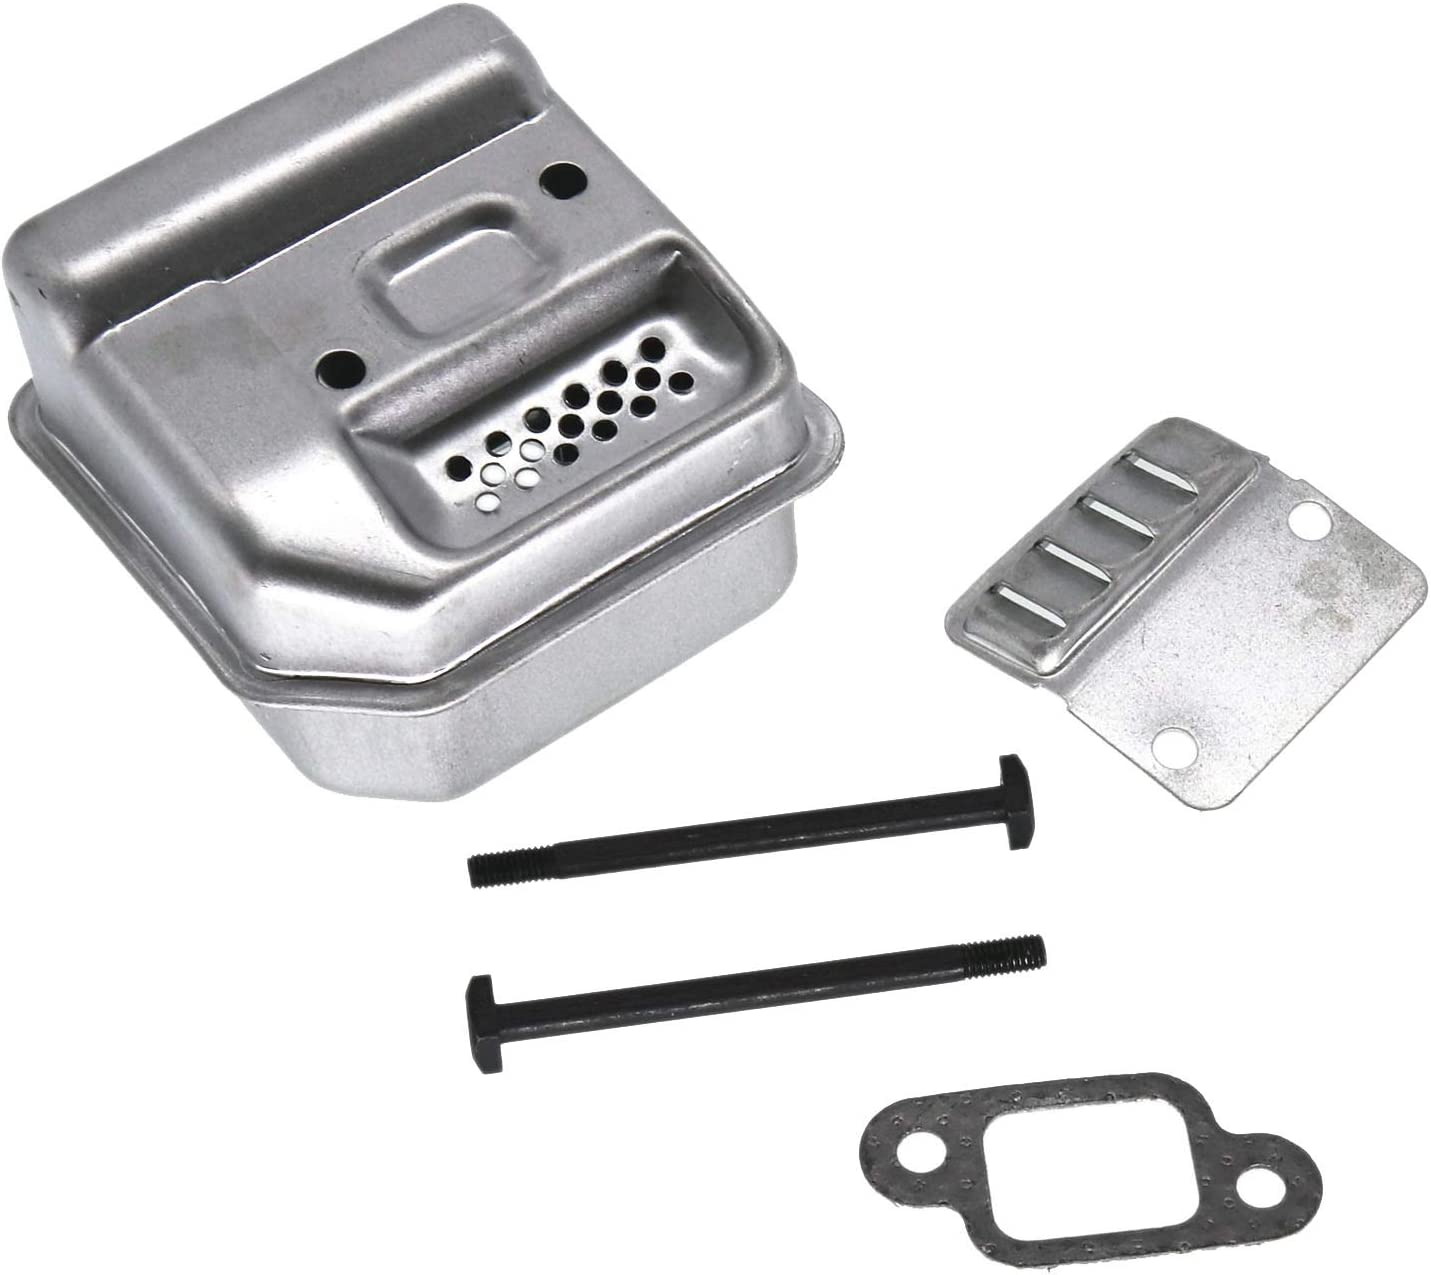 Muffler Exhaust /& Gasket /& Bolts For STIHL 017 018 MS180 Chainsaw High Quality